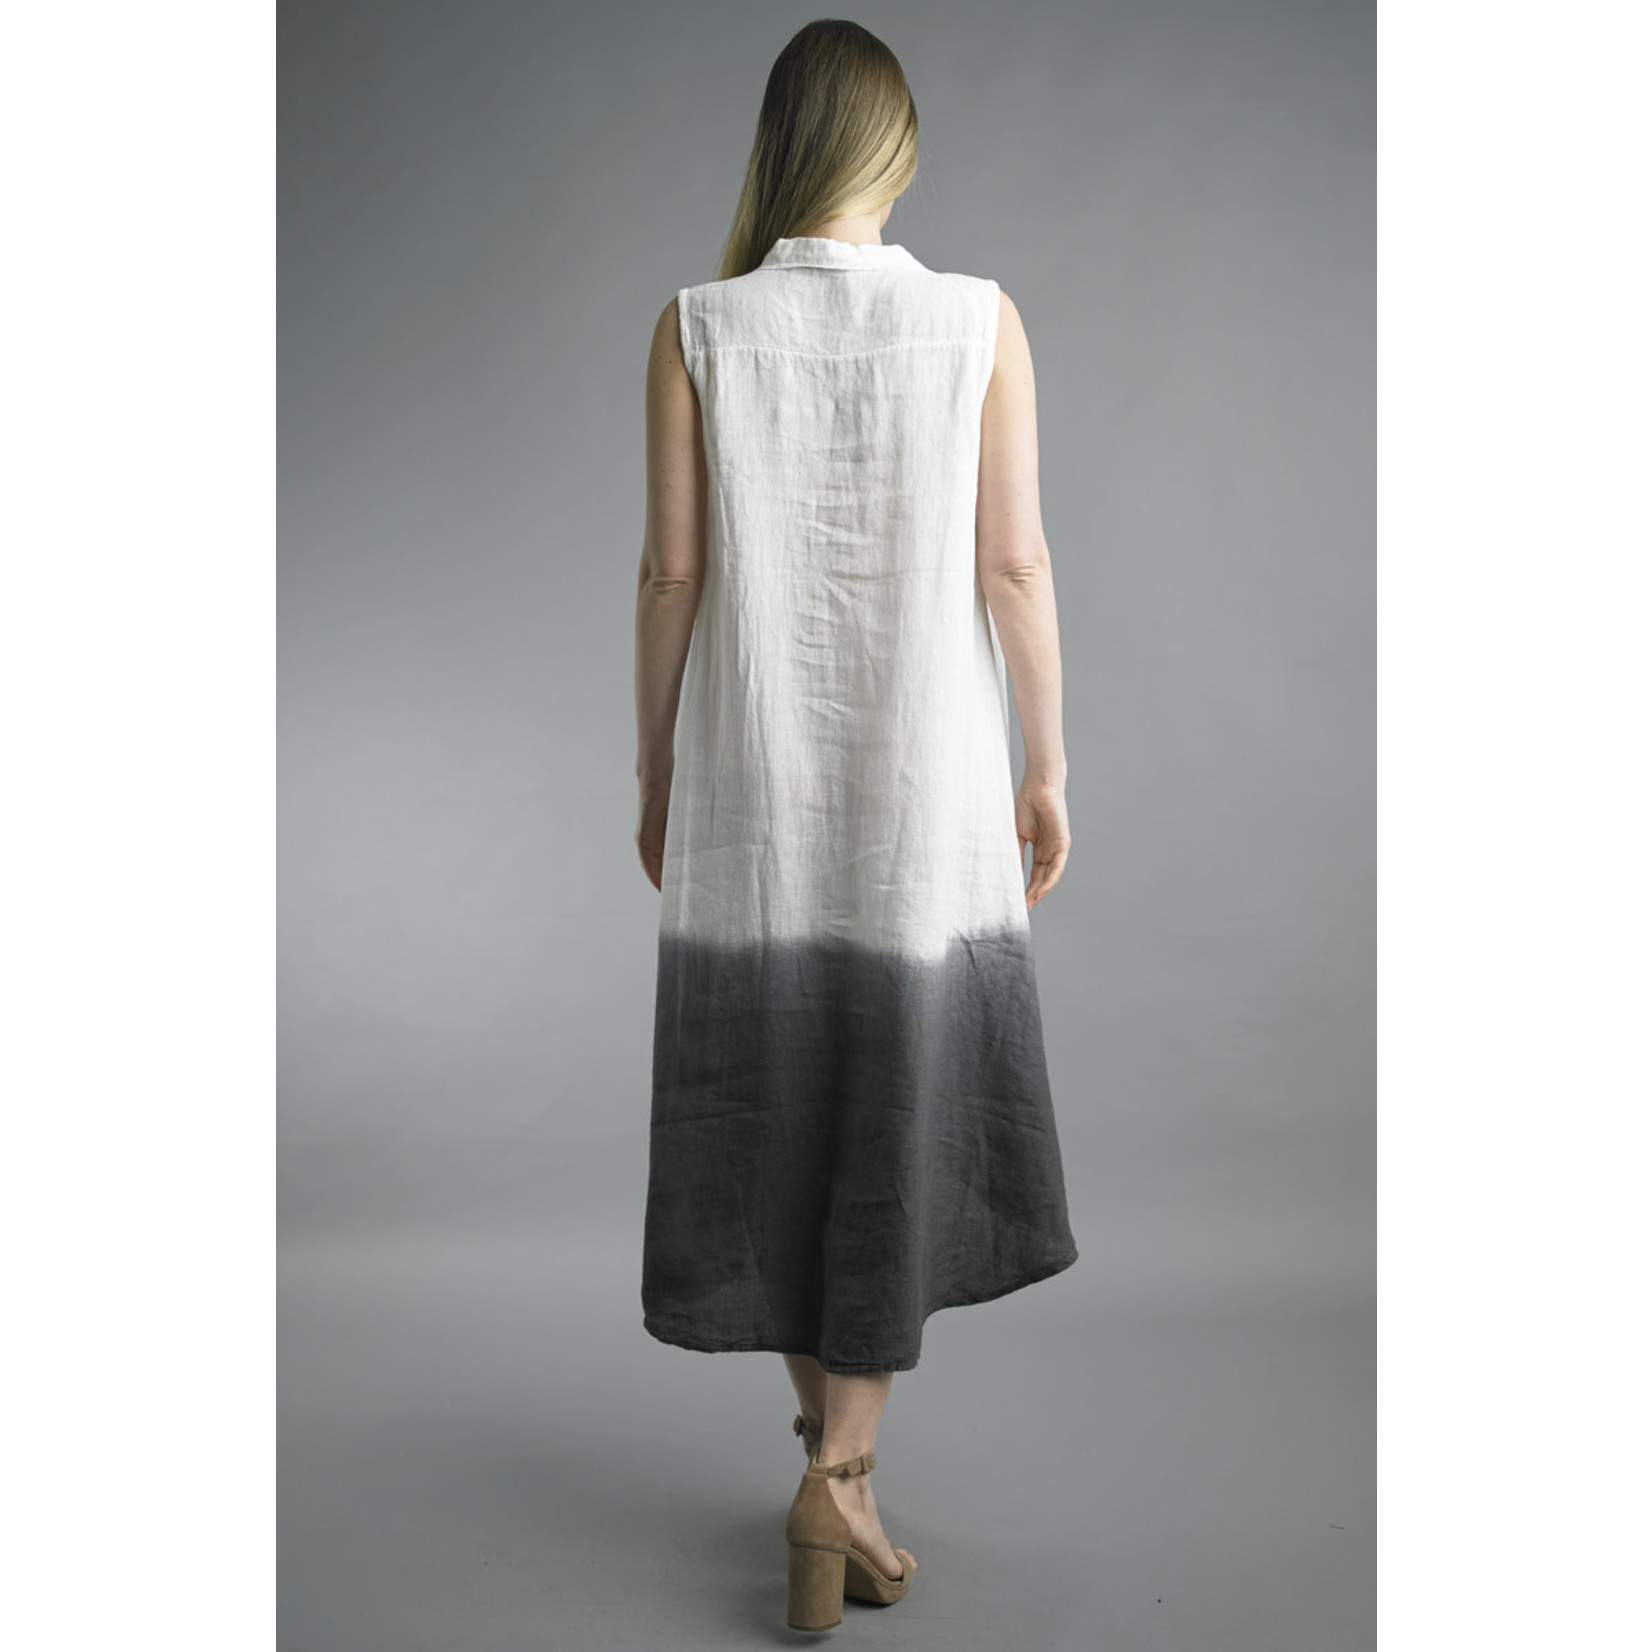 Tempo Paris Cream and Dipped-Dyed Charcoal Linen Button-up Dress